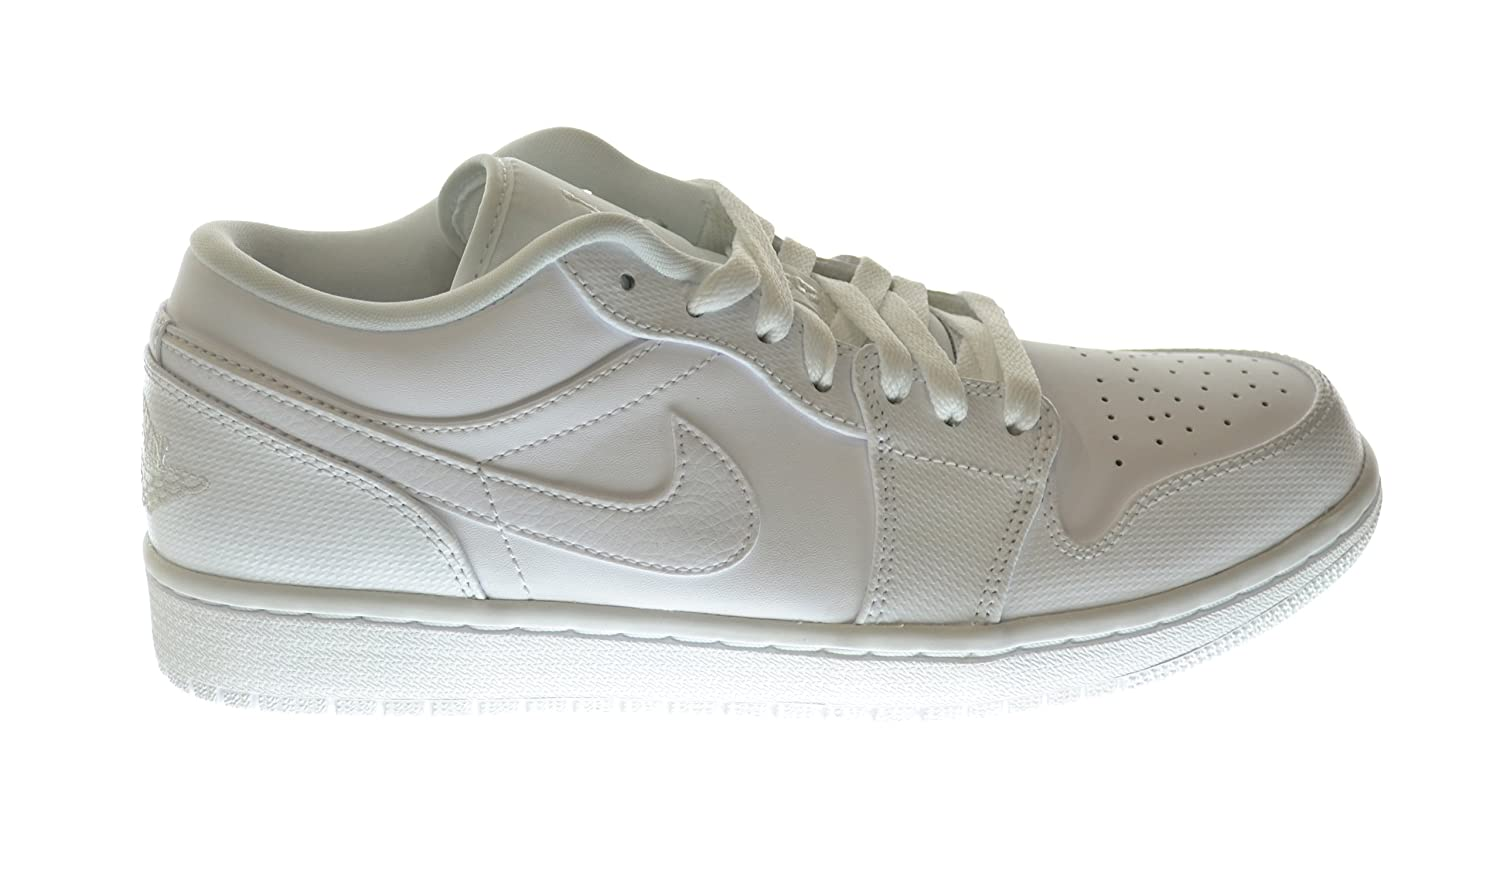 5a4e4fdcb8d0ed Jordan Air 1 Low Men s Sneakers White 553558-102 (12.5 D(M) US)   Amazon.co.uk  Shoes   Bags